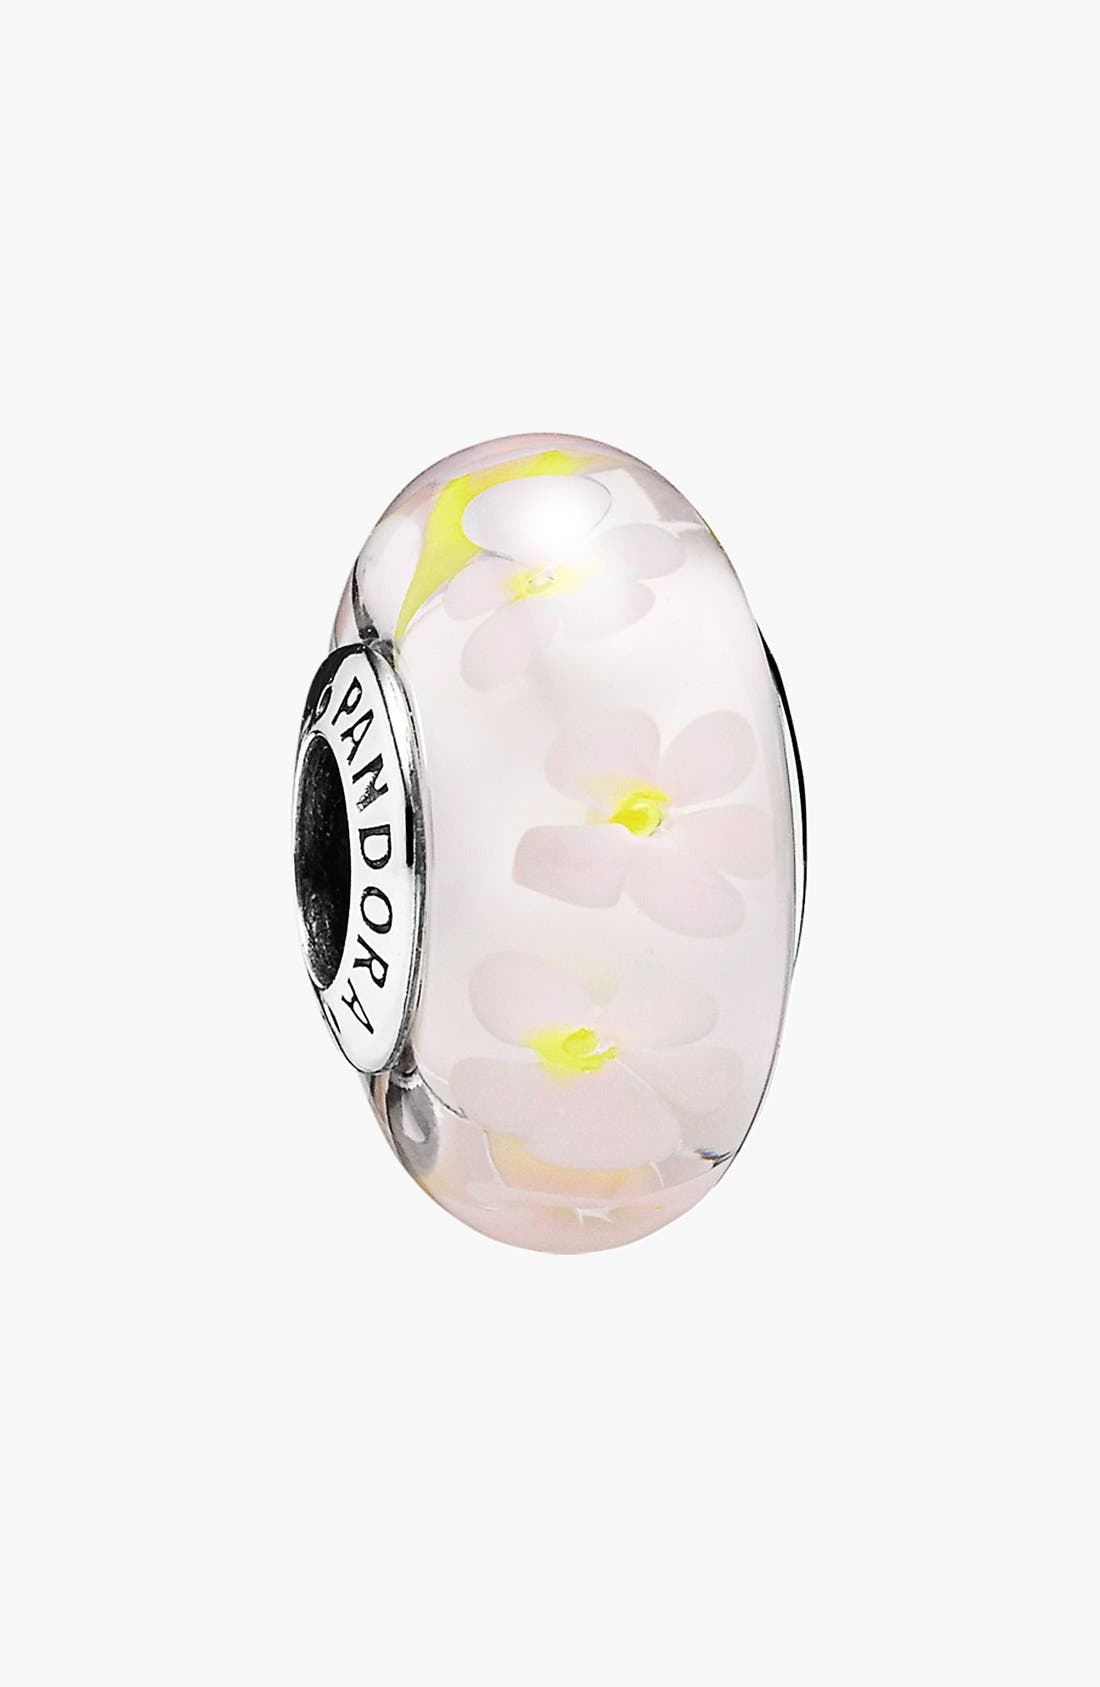 Alternate Image 1 Selected - PANDORA 'Field of Daisies' Murano Glass Bead Charm